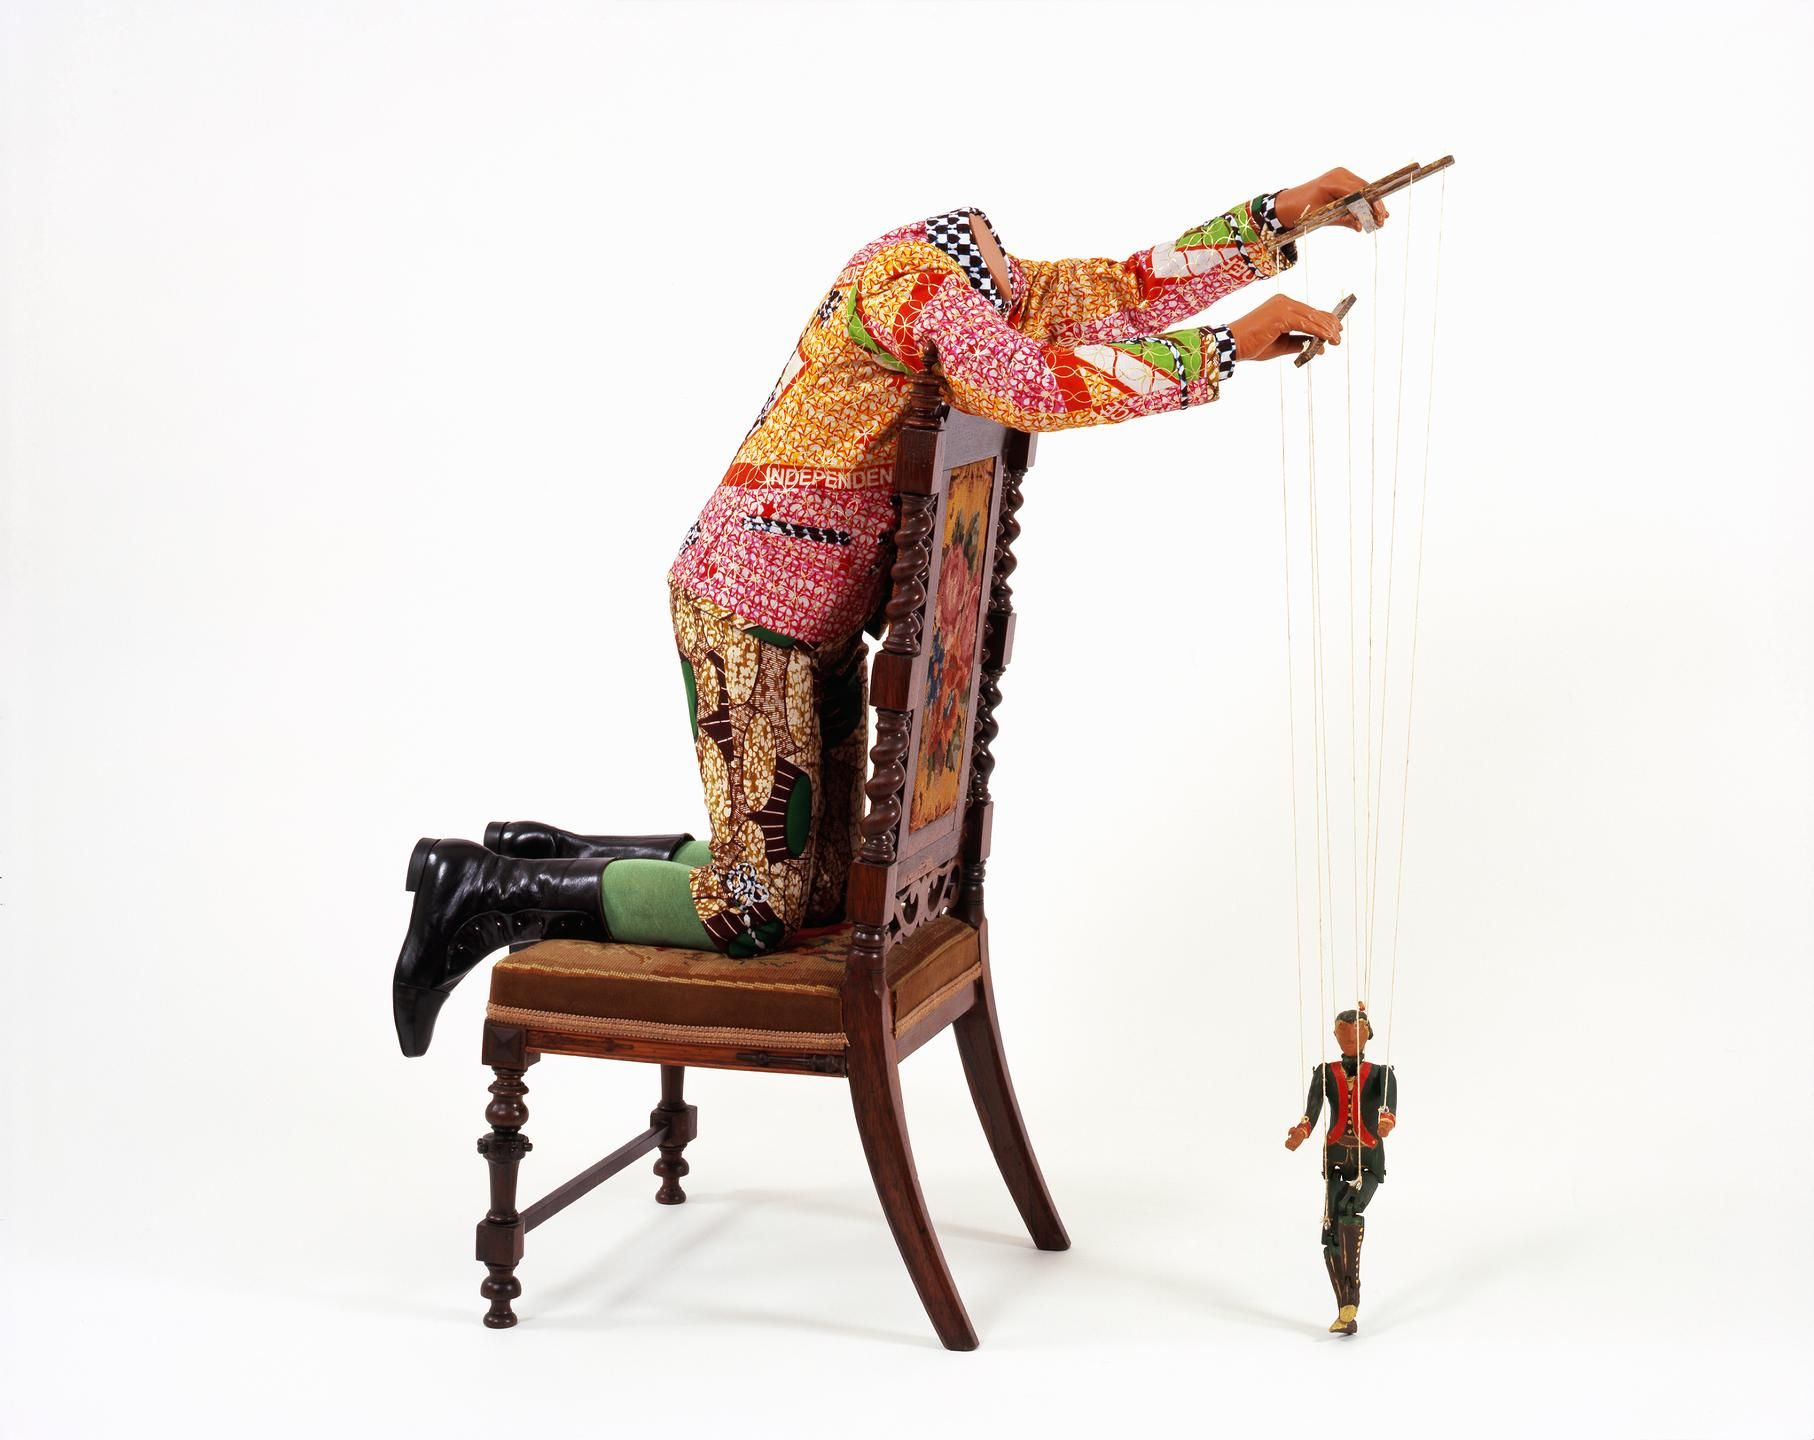 Yinka Shonibare Boy with Marionette